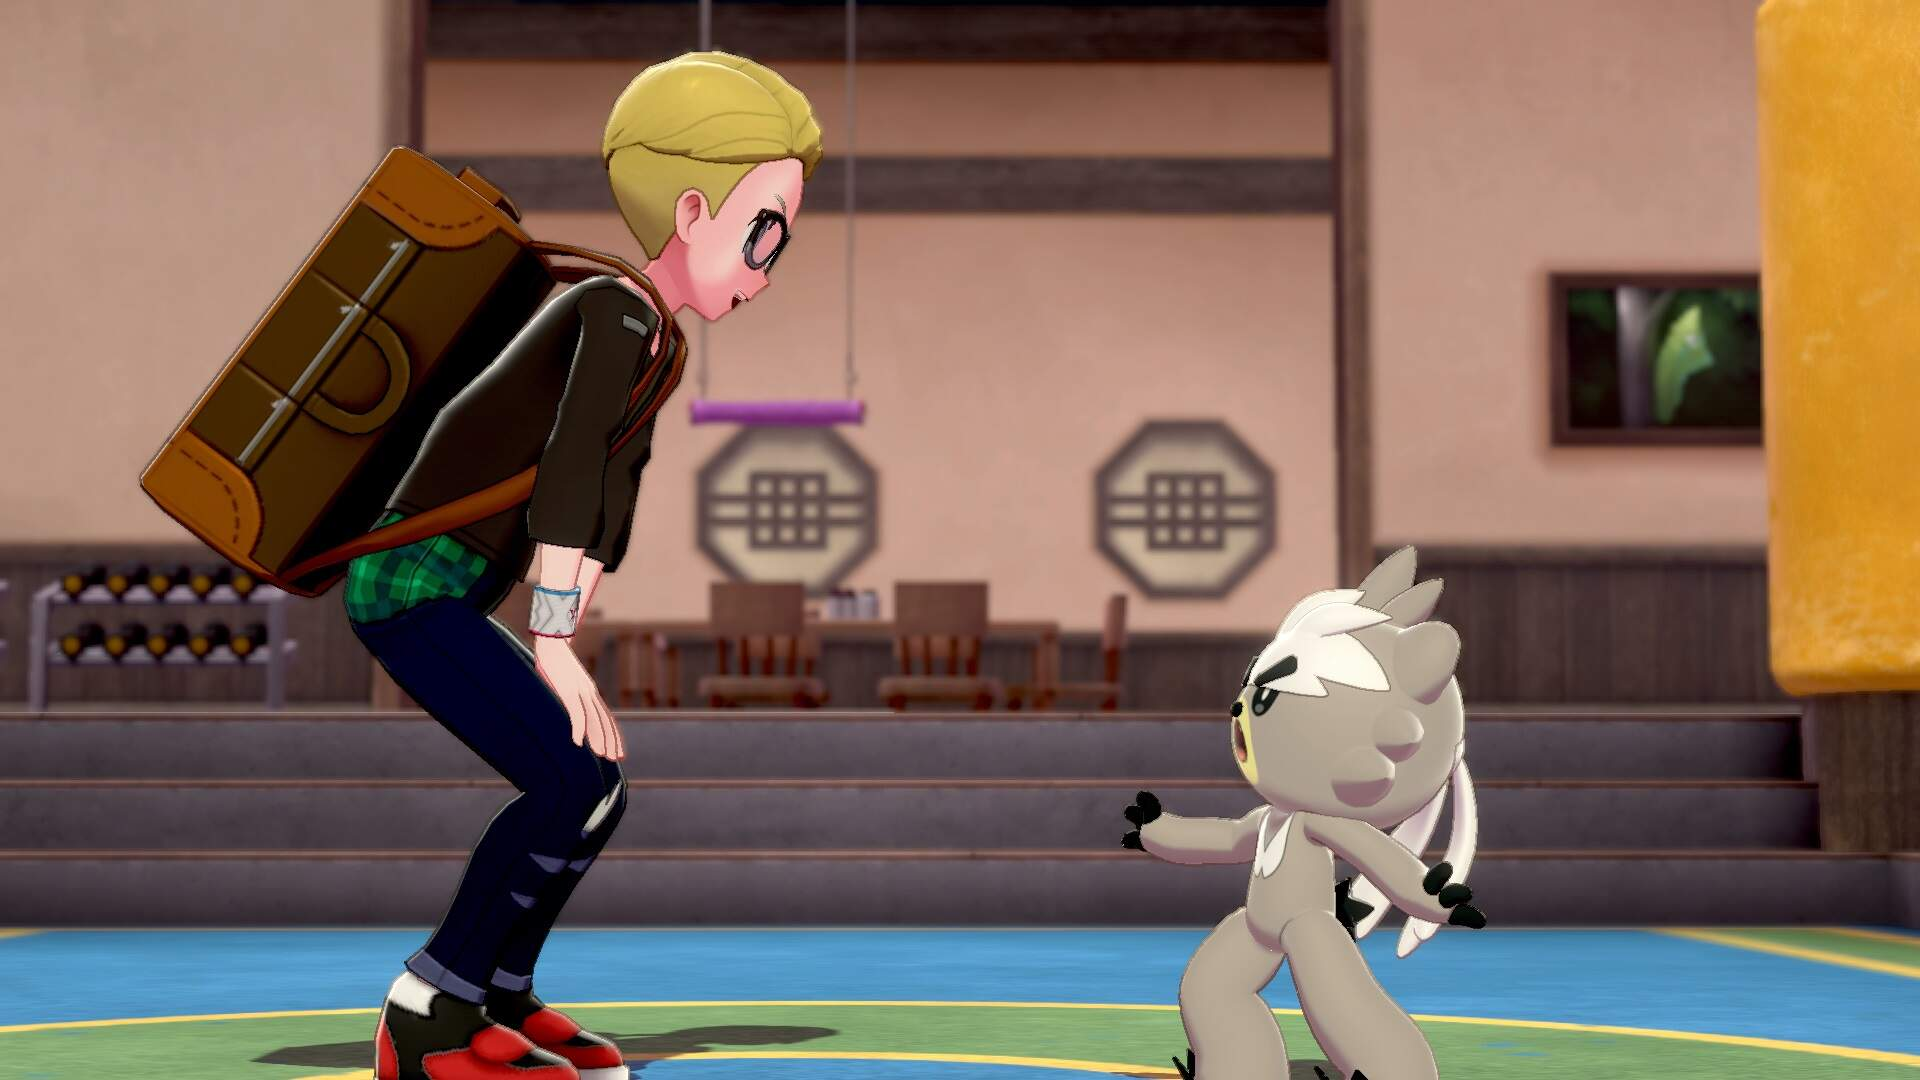 The Pokemon Isle of Armor DLC's Lively New Wild Area is Much Better Than Sword and Shield's